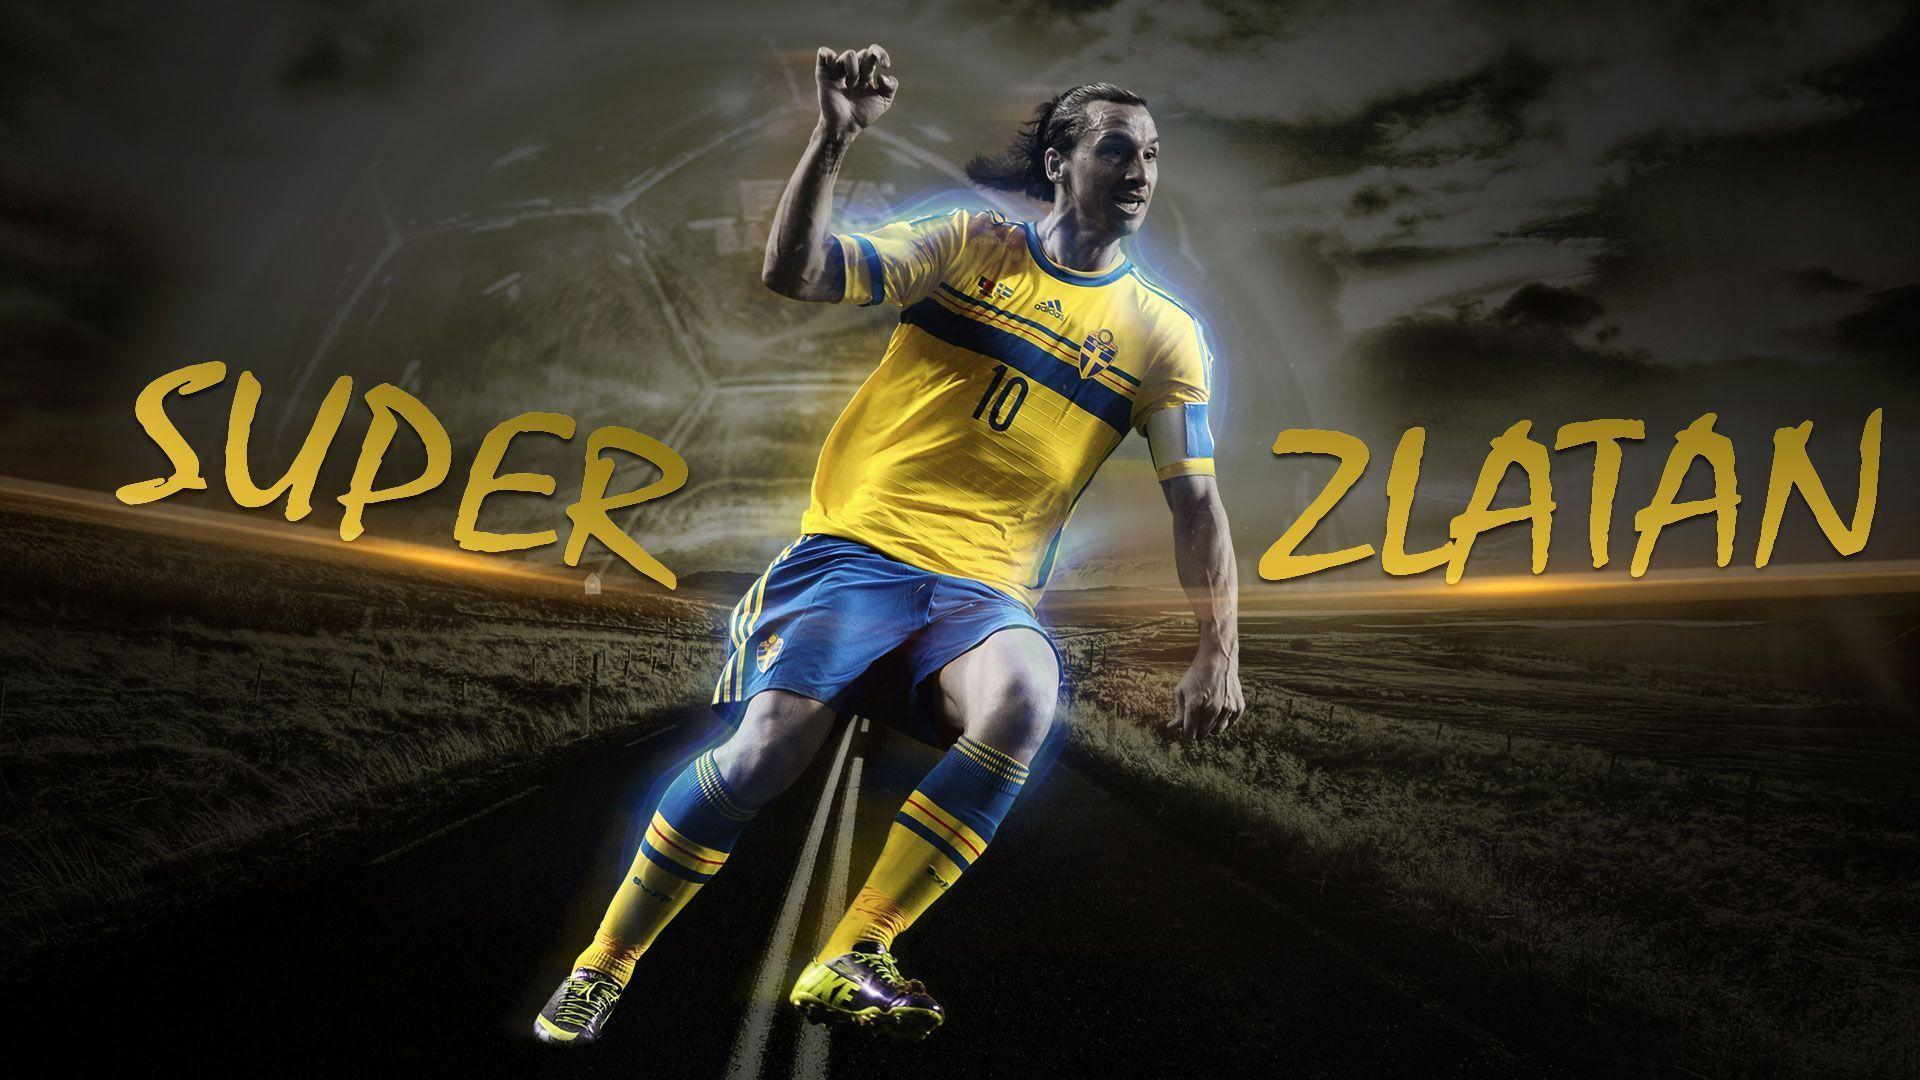 Zlatan Ibrahimovic 2014 Sweden Wallpaper Wide or HD | Male ...